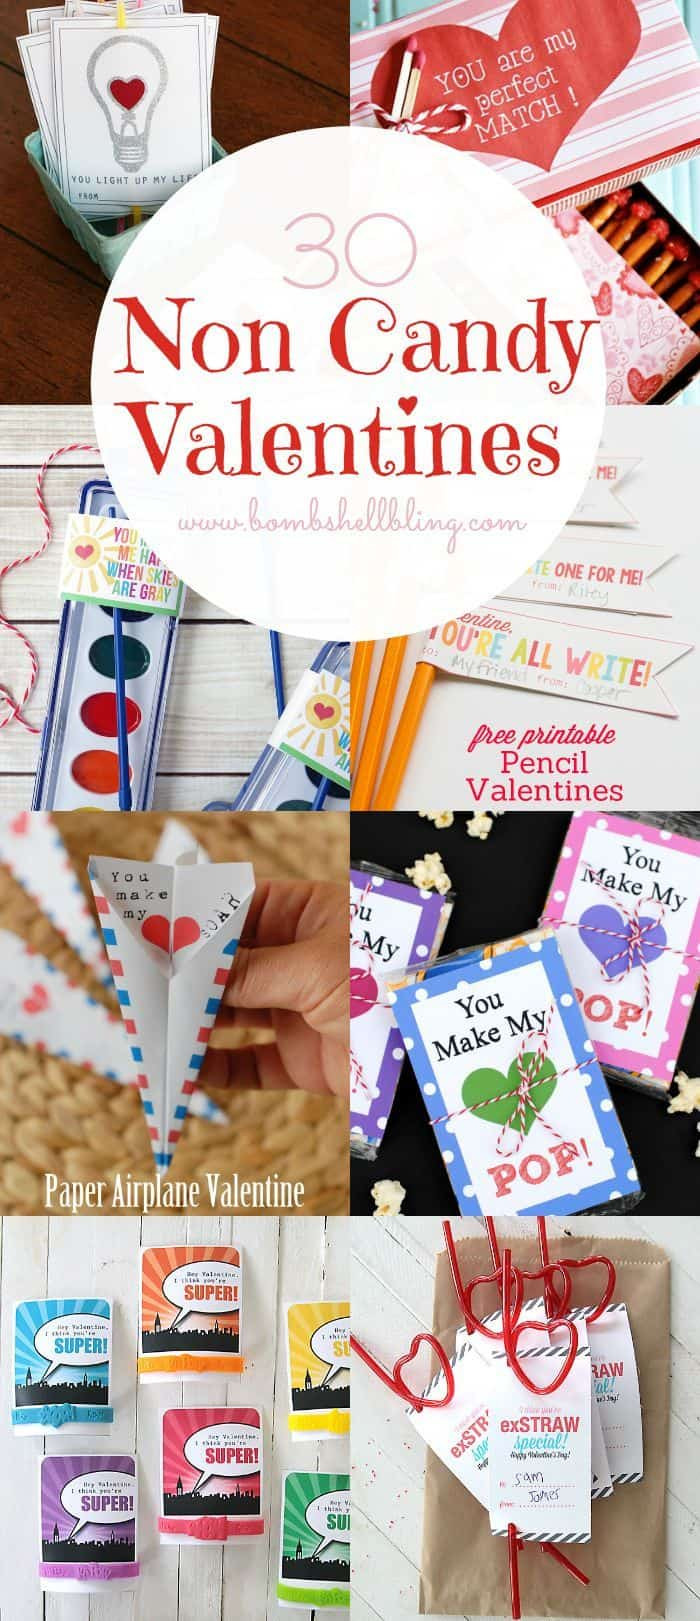 Valentines Candy Gift Ideas  10 Non Candy Valentine s Day Gift Ideas for Kids